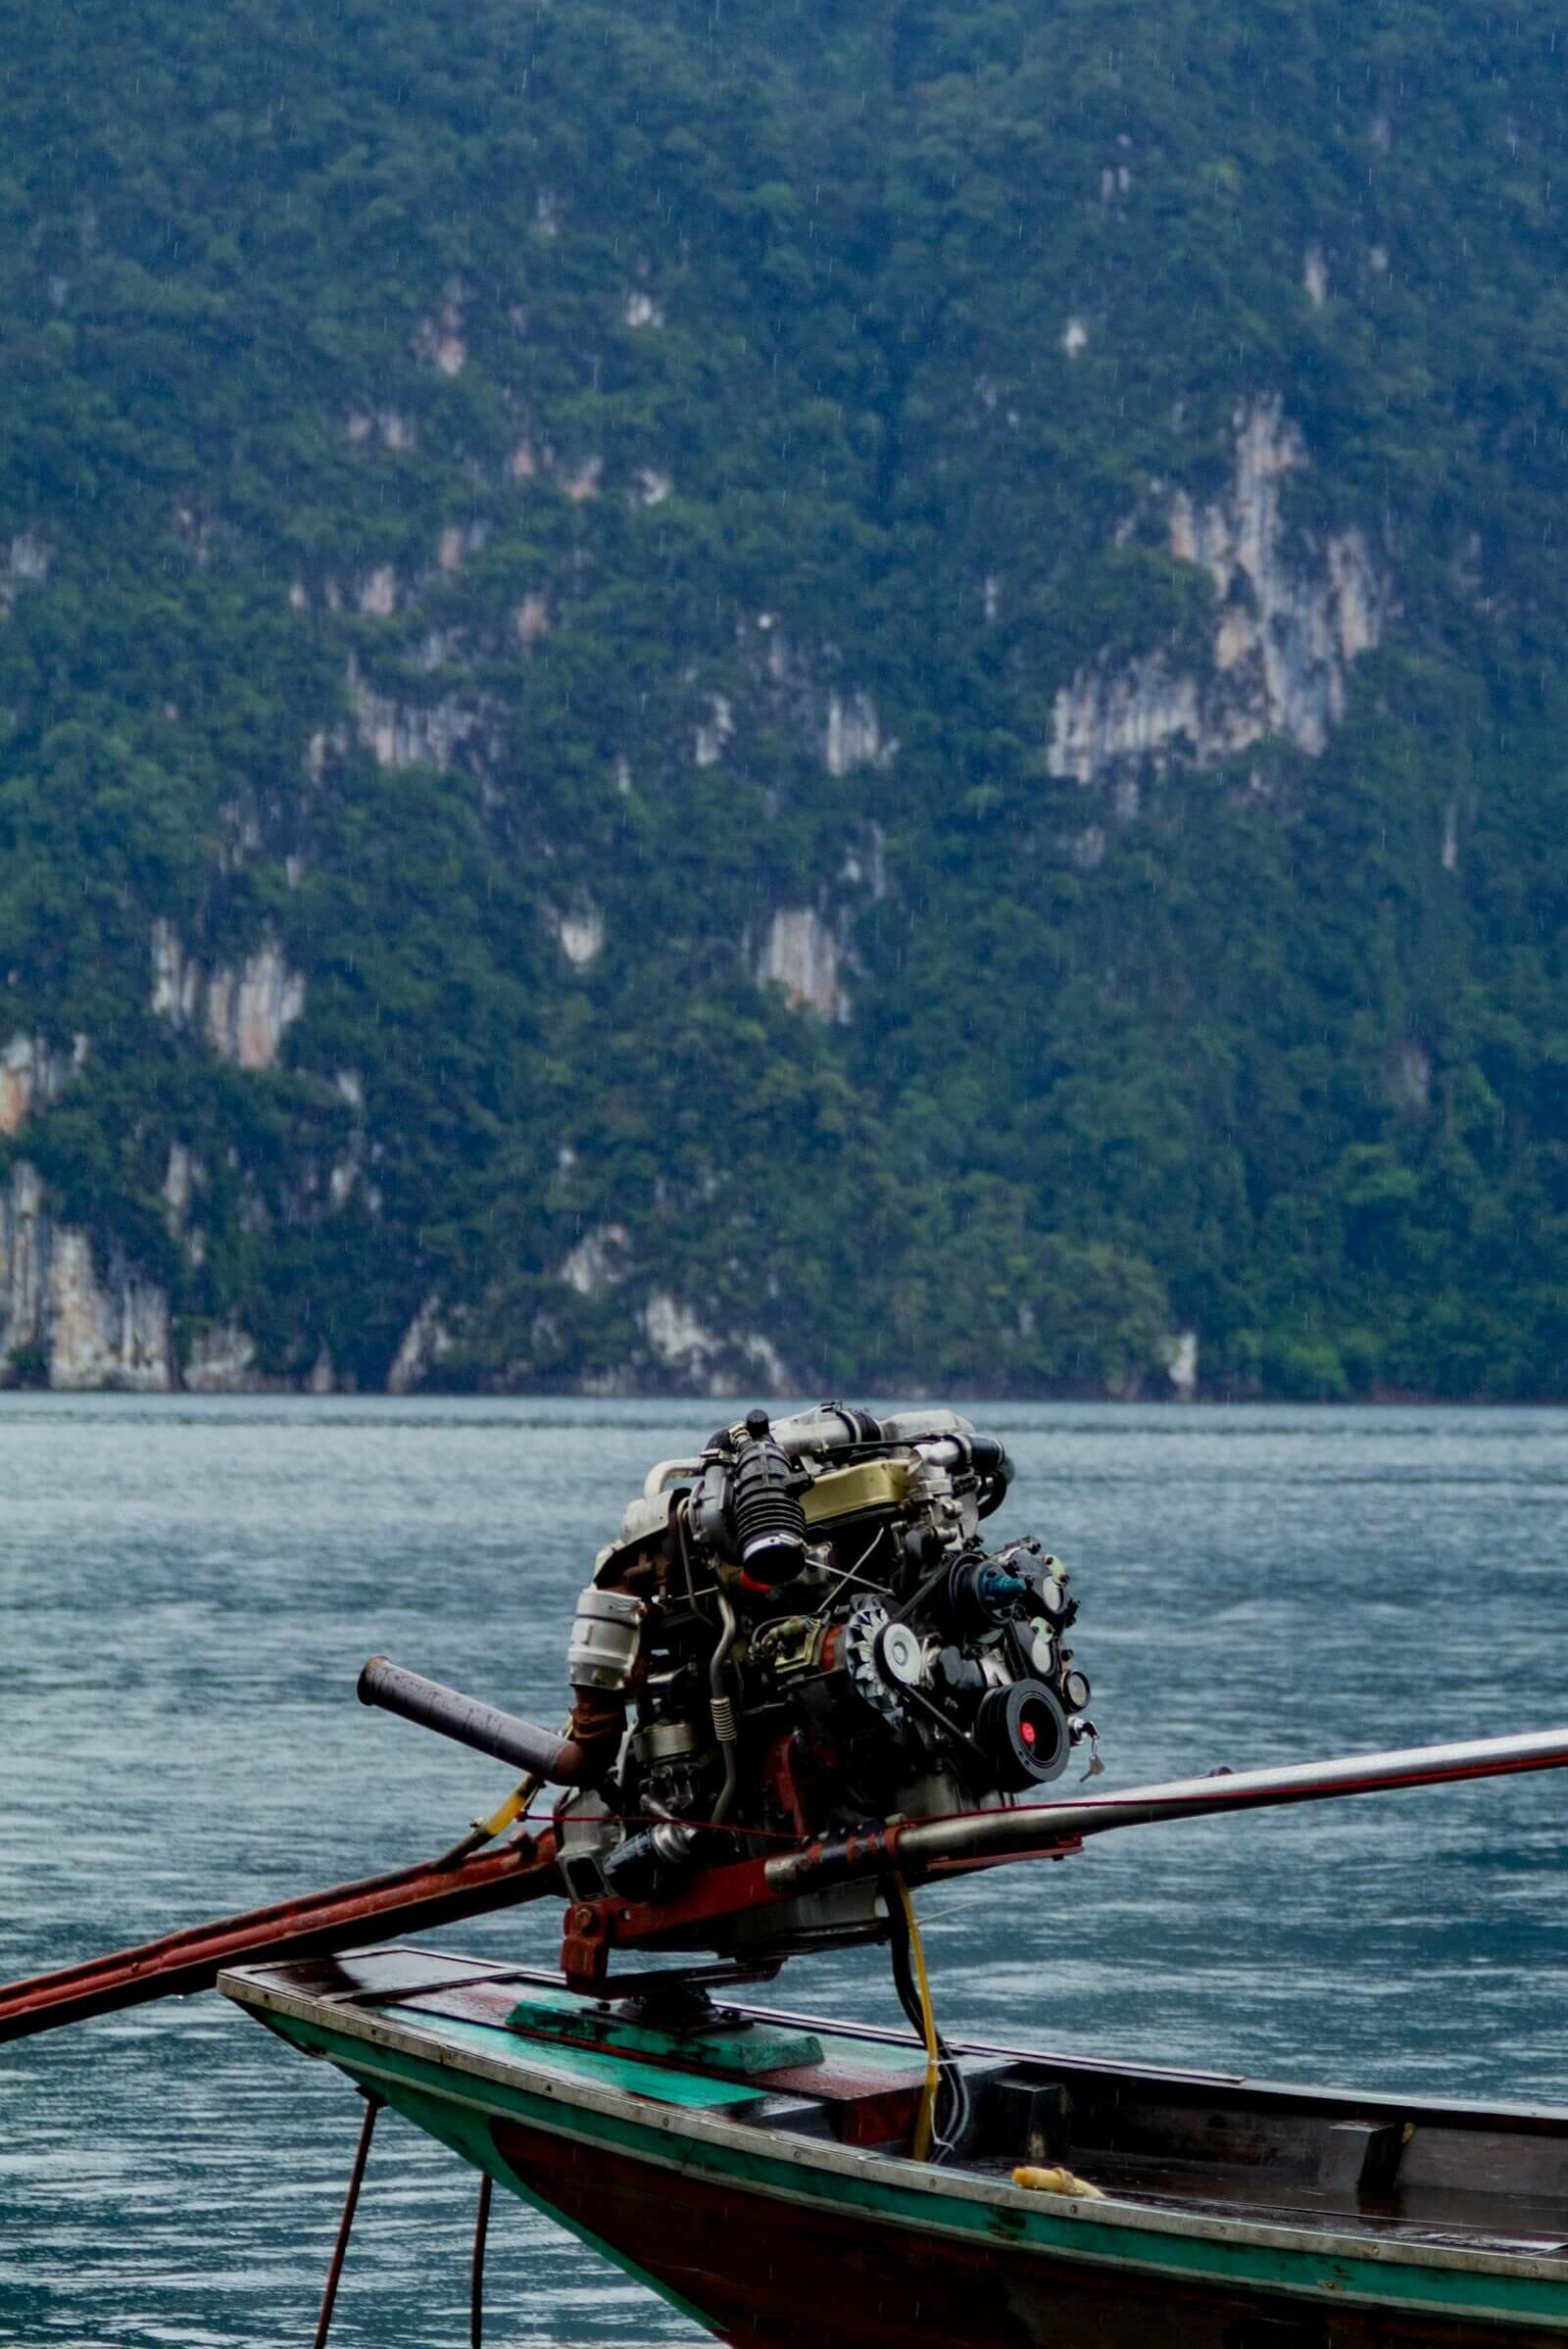 Self constructed outboard motor on a longtail boat in Thailand